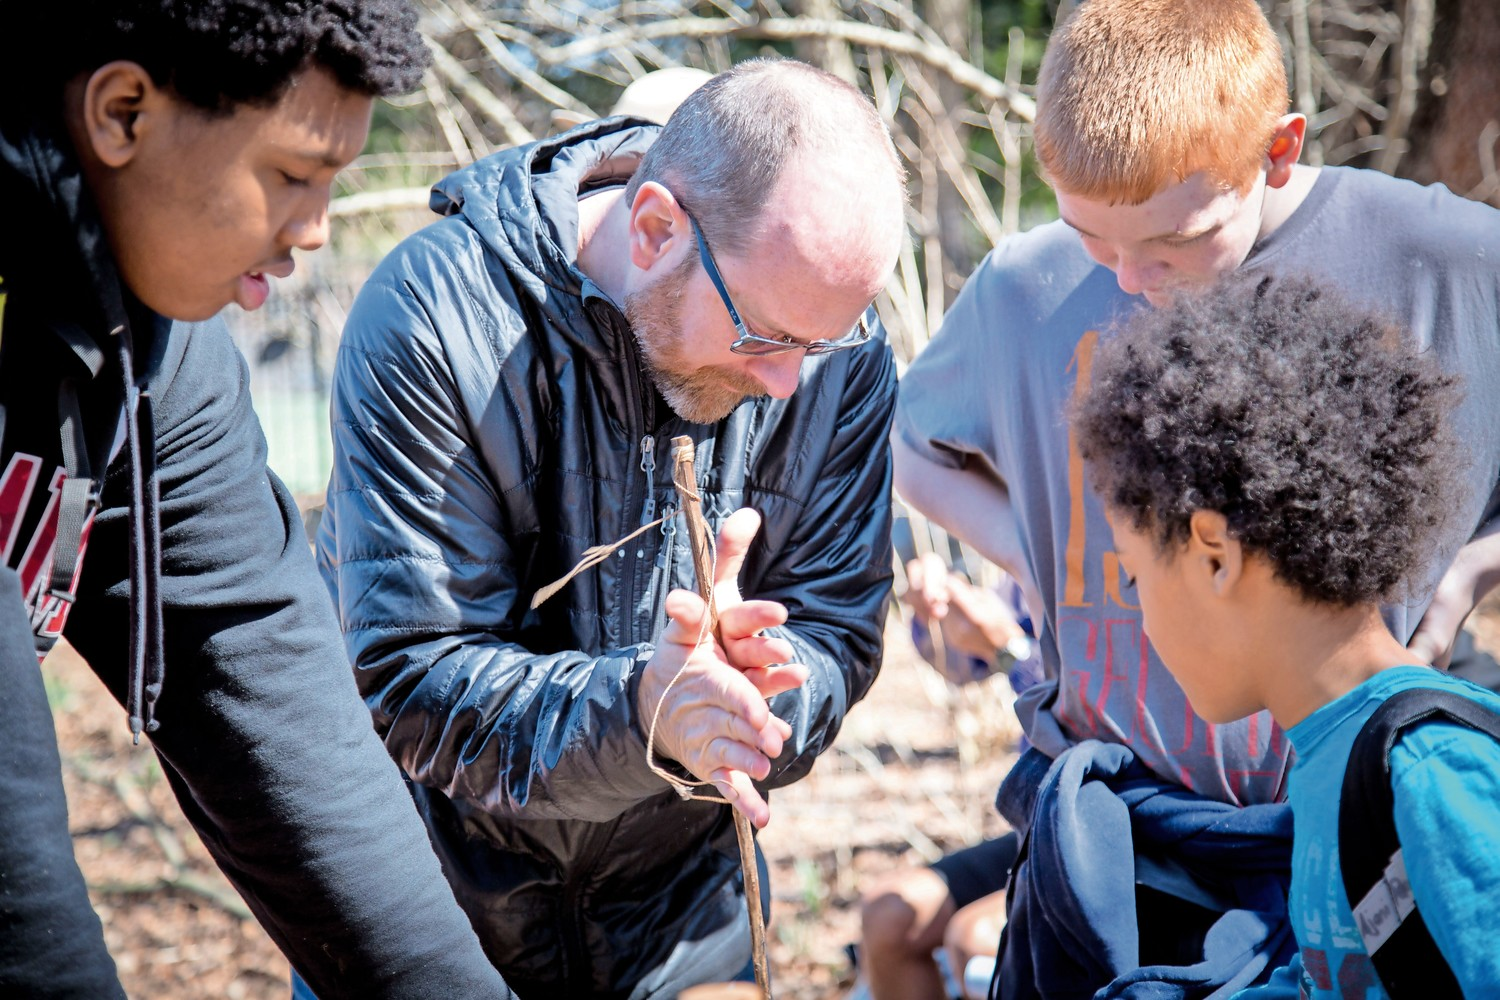 John Doran shows his son, Aidan, and two boys how to make use of natural supplies at the 'Survival Series' workshop in Van Cortlandt Park.